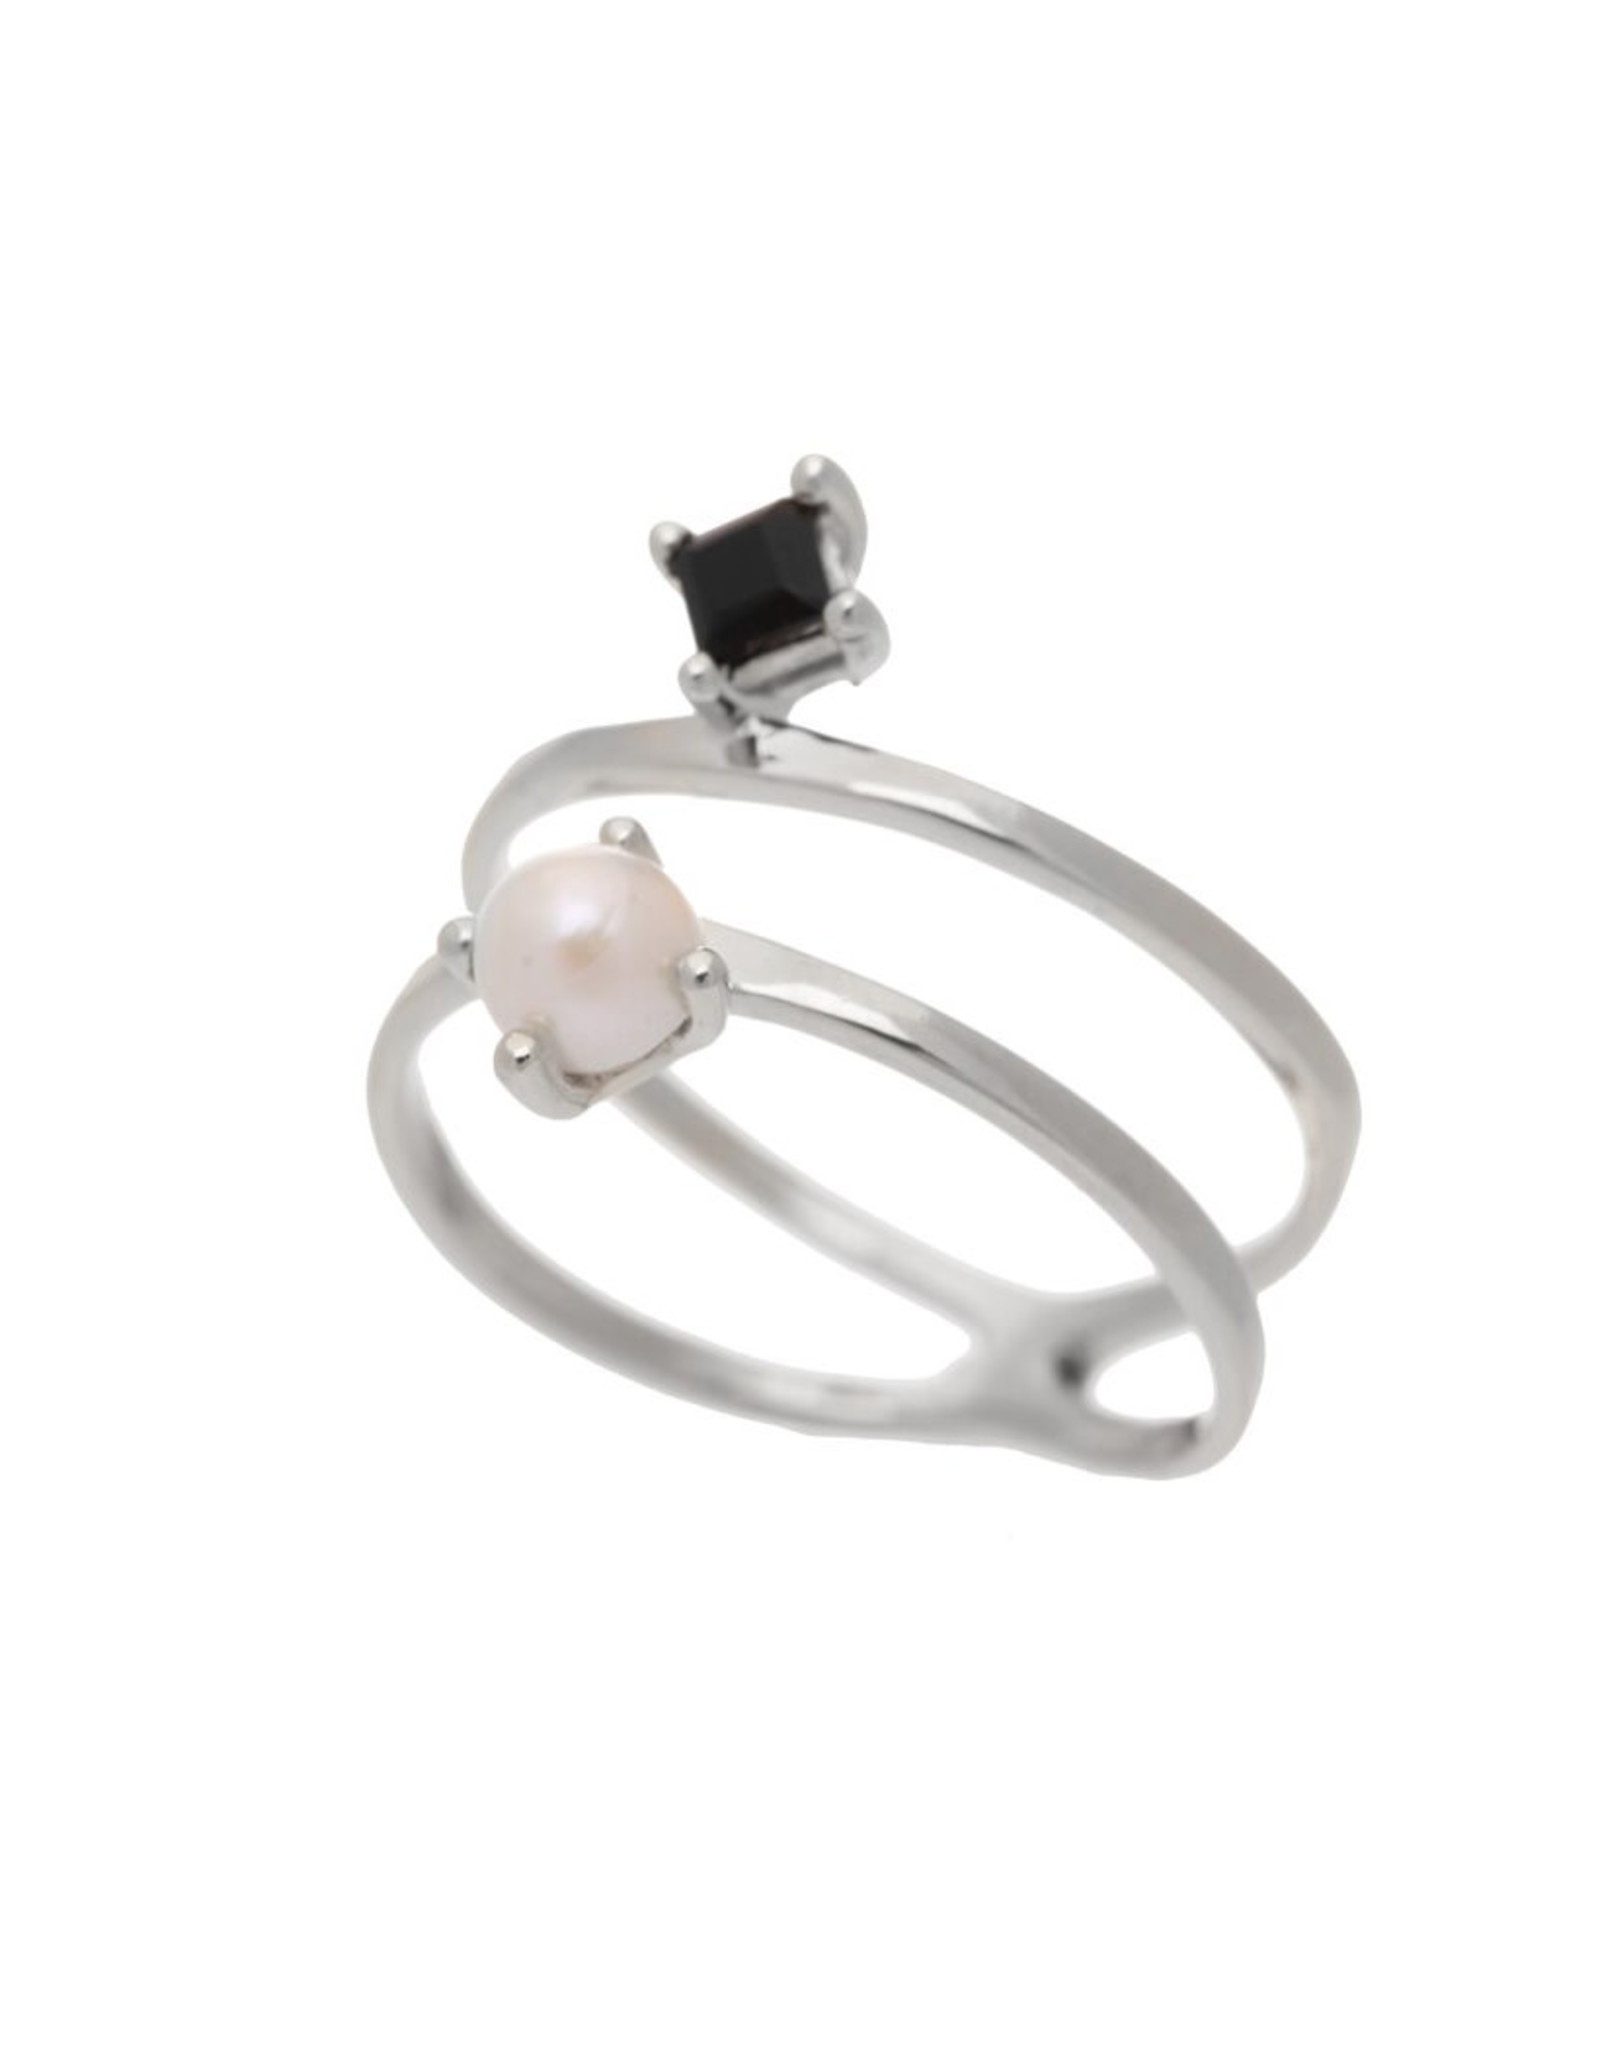 Sarah Mulder Jewelry Silver Cassie Ring - Onyx + Pearl - 5